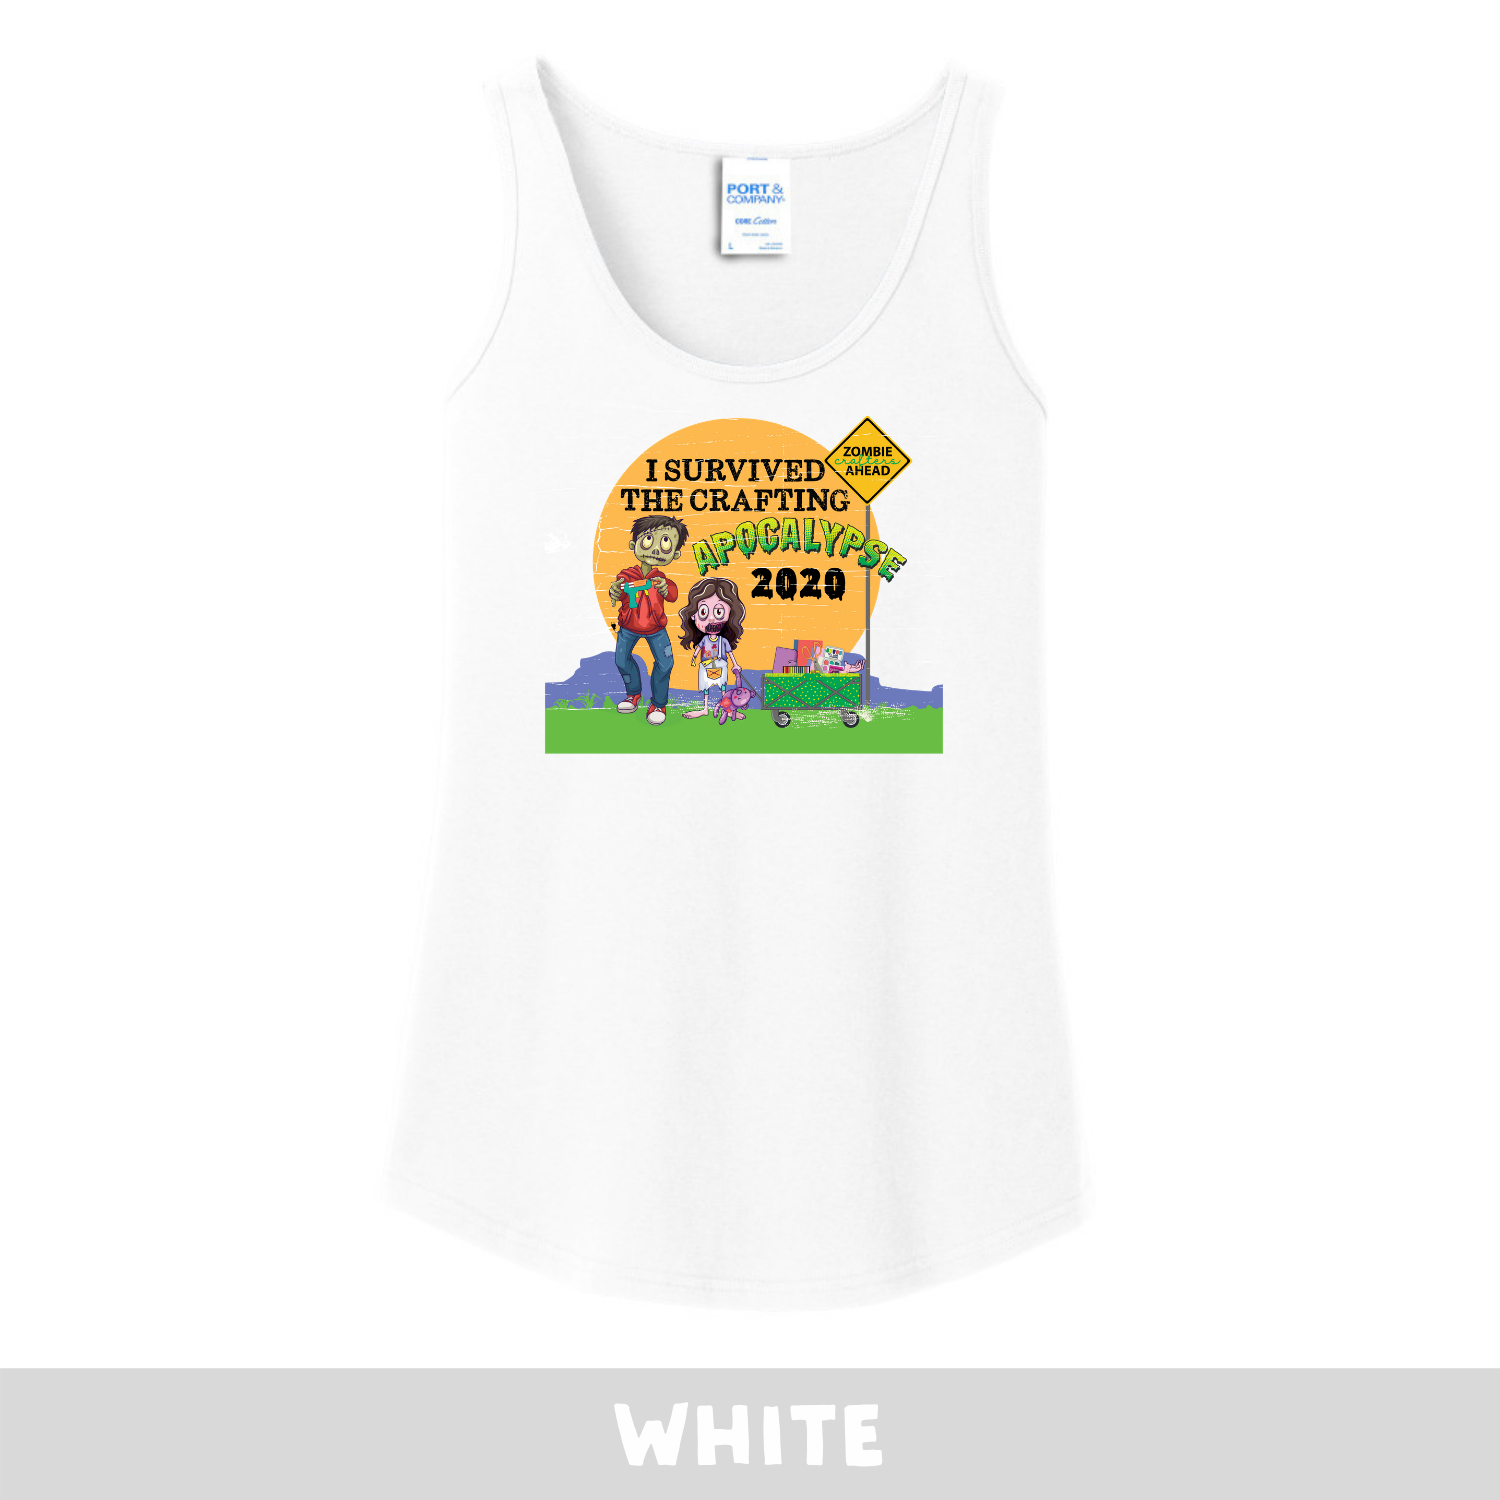 White -  Woman's Cut Tank Top - I Survived The 2020 Crafting Apocalypse